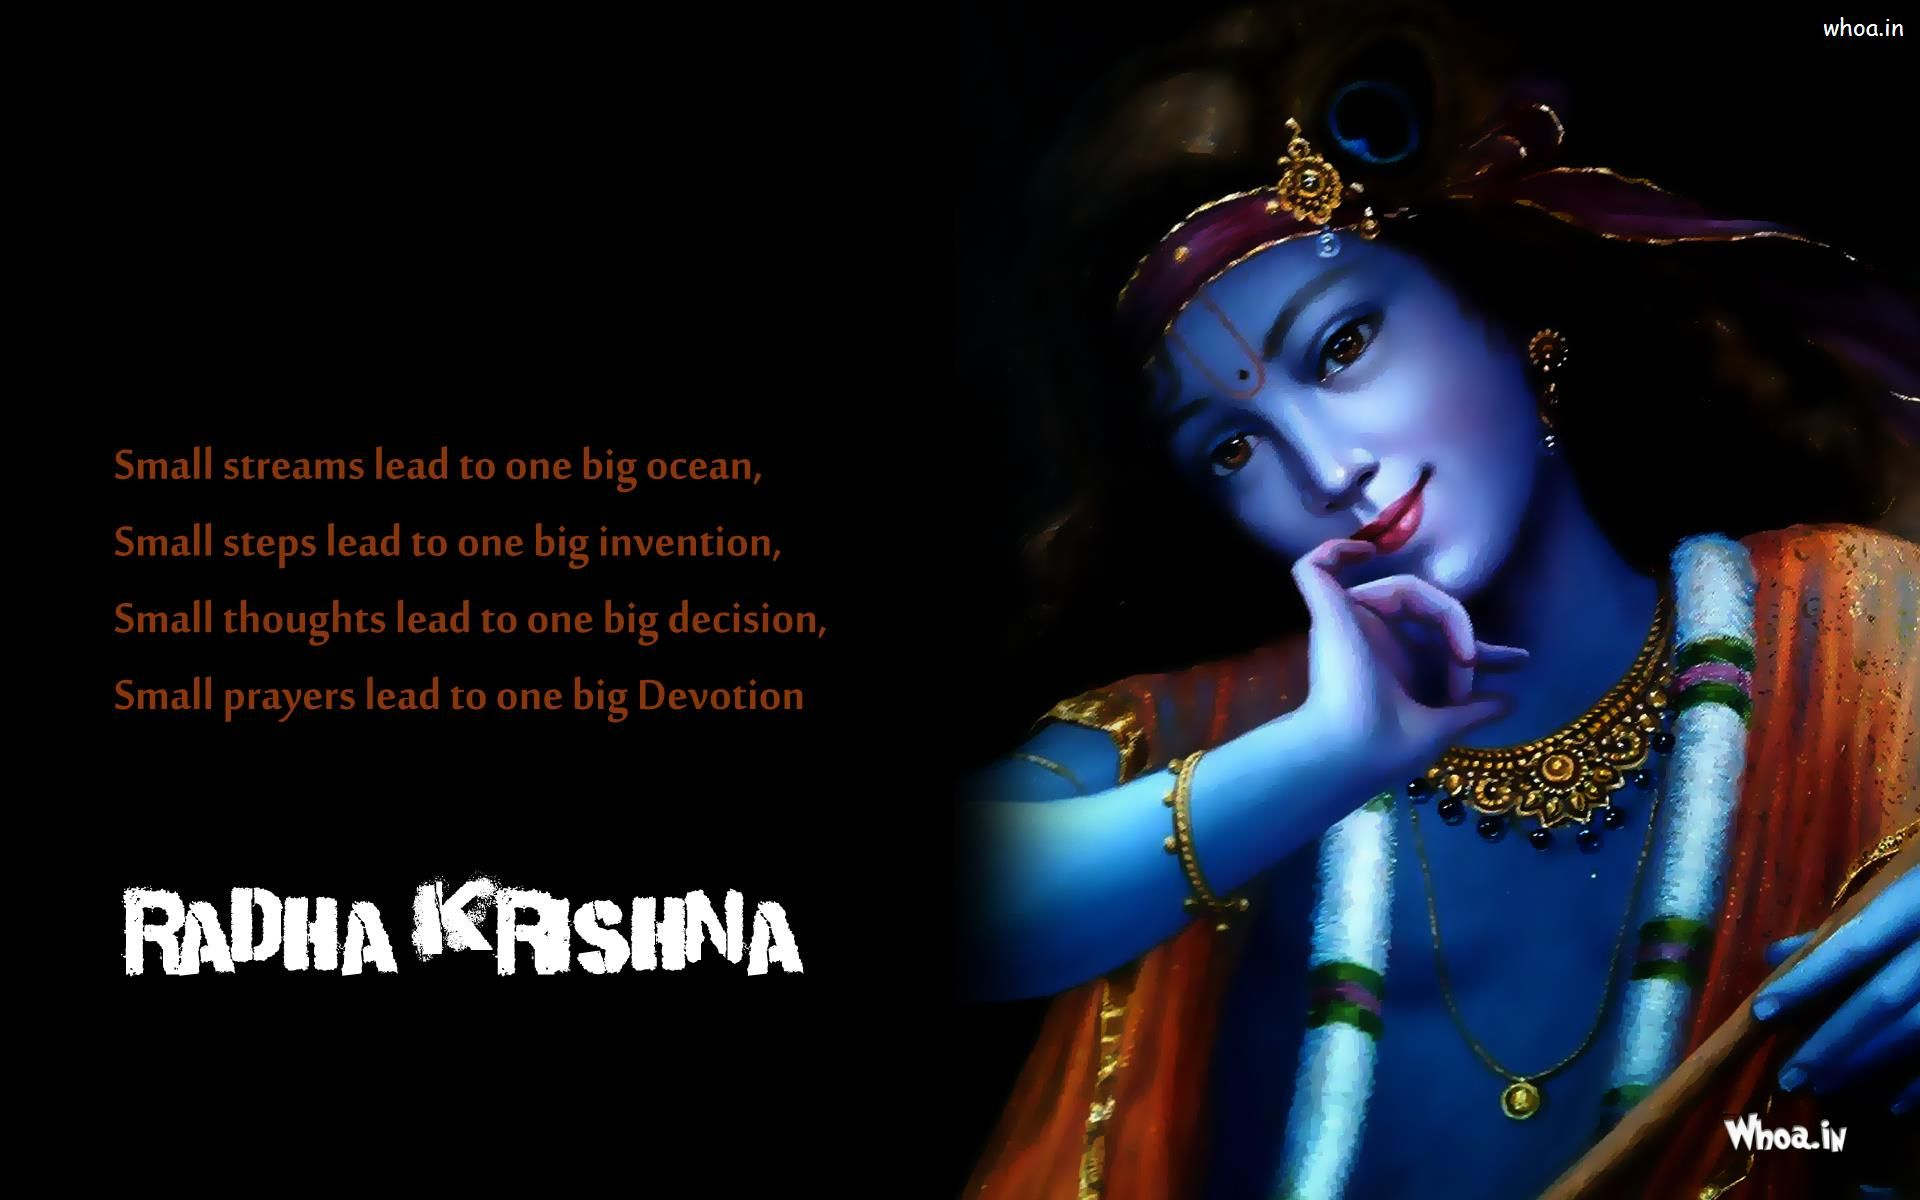 Lord Krishna Quotes Indian Gods Quotes  Google Search  God  Pinterest  Indian Gods